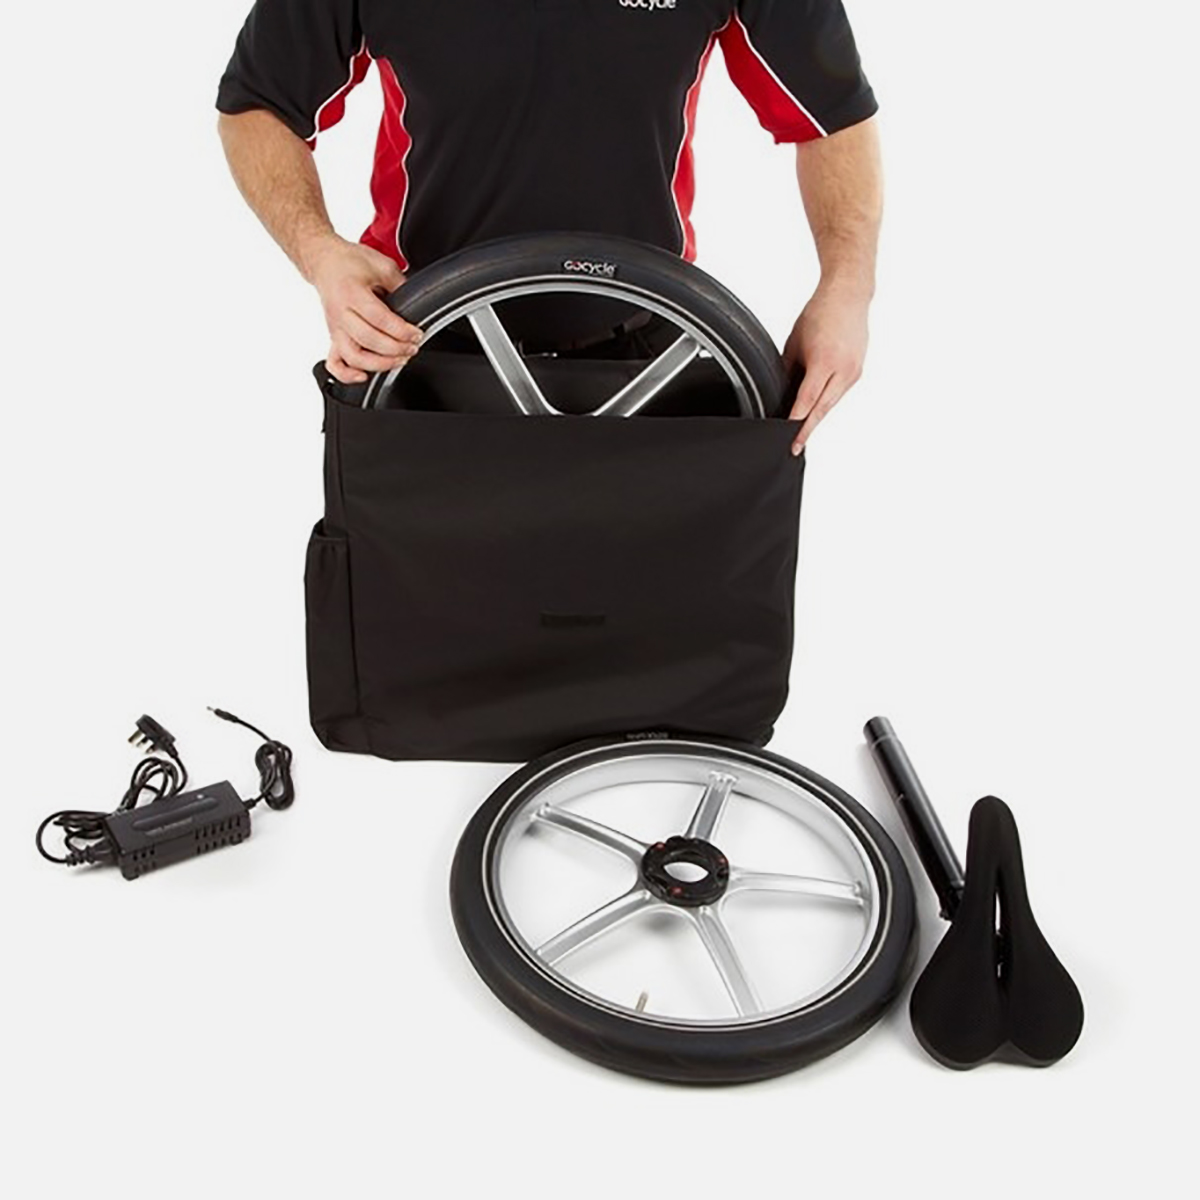 Gocycle Kit Bag